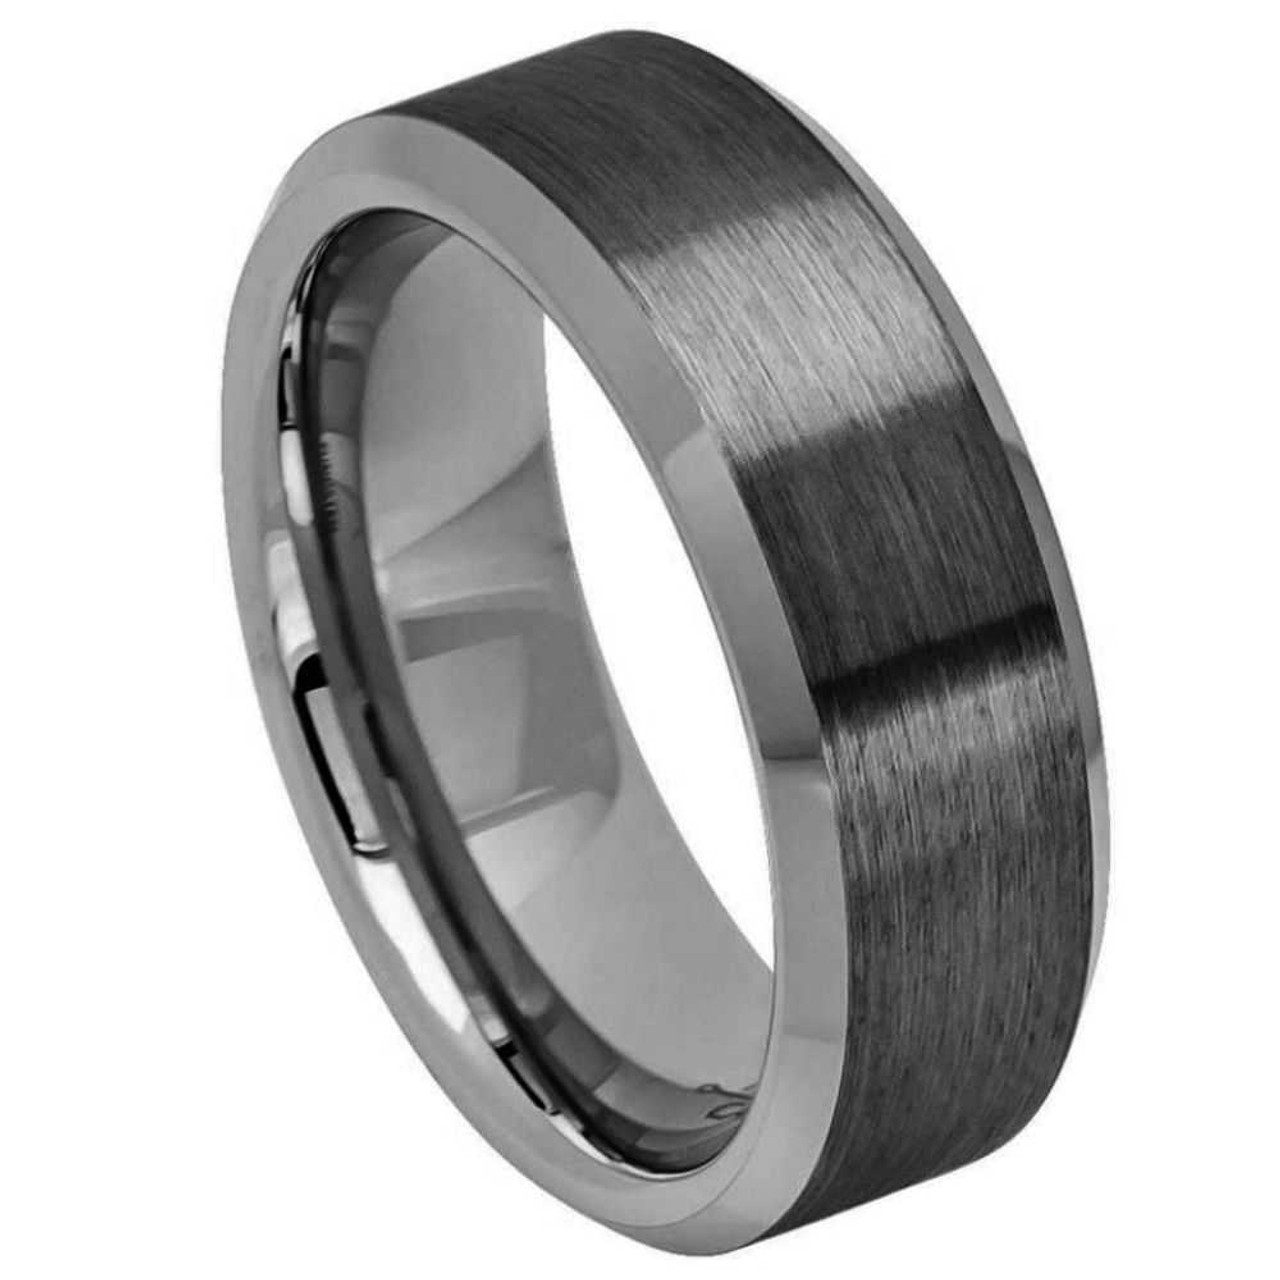 Mens 8mm Tungsten Ring Black IP Plated Brushed Center Shiny Lines on each side Beveled Edge